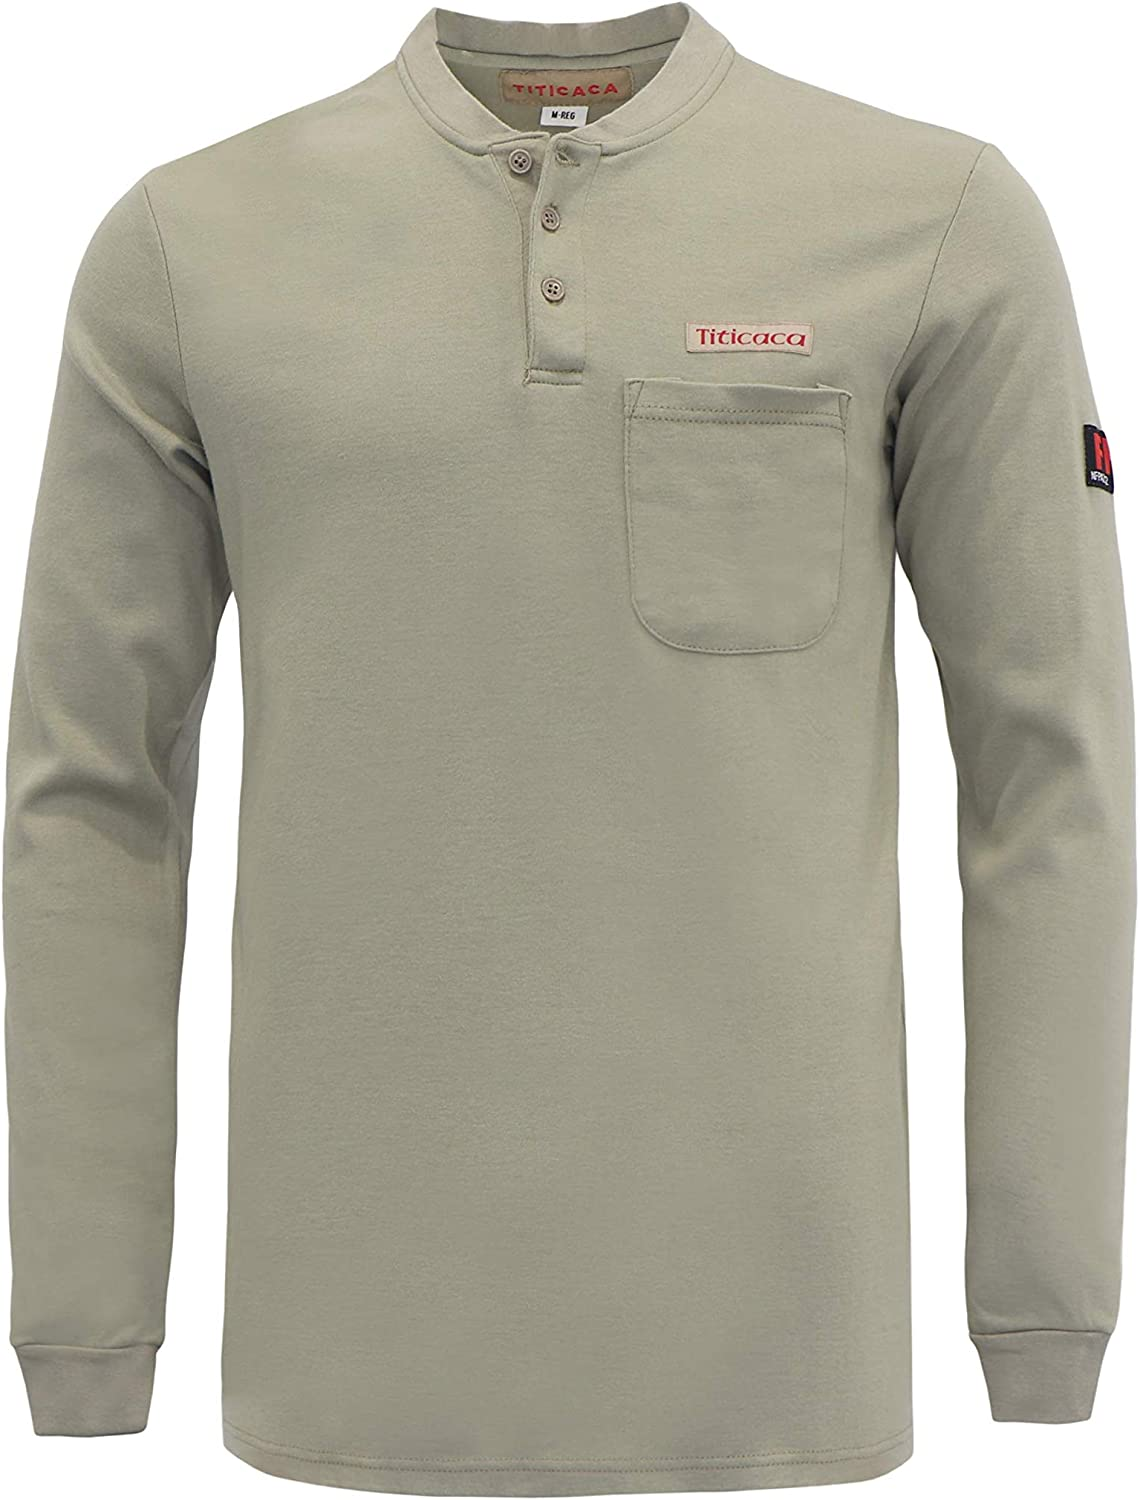 Titicaca Flame Resistant FR 7OZ 100% Cotton Henley Style Long Sleeve T-Shirts